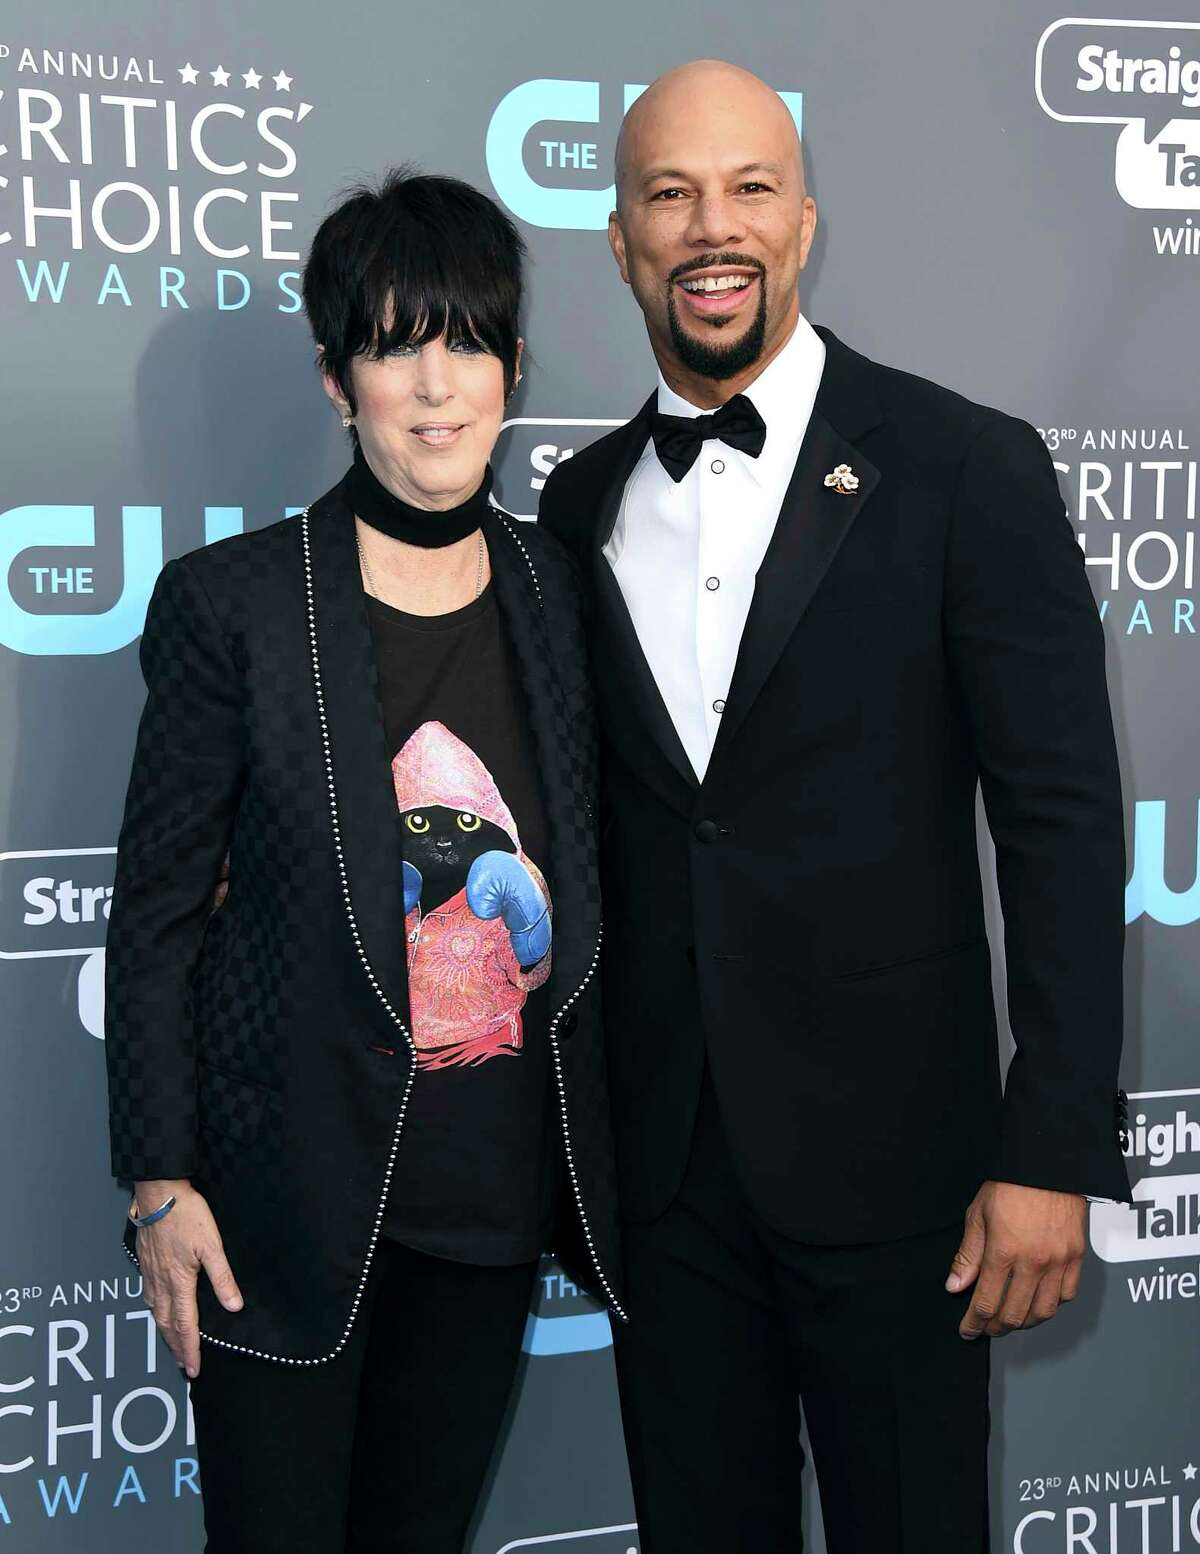 """Diane Warren, left, and Common arrive at the 2018 Critics' Choice Awards in Santa Monica, Calif. The pair were nominated for an Oscar for best original song for """"Stand Up For Something,"""" from the film """"Marshall."""" (Photo by Jordan Strauss/Invision/AP, File)"""